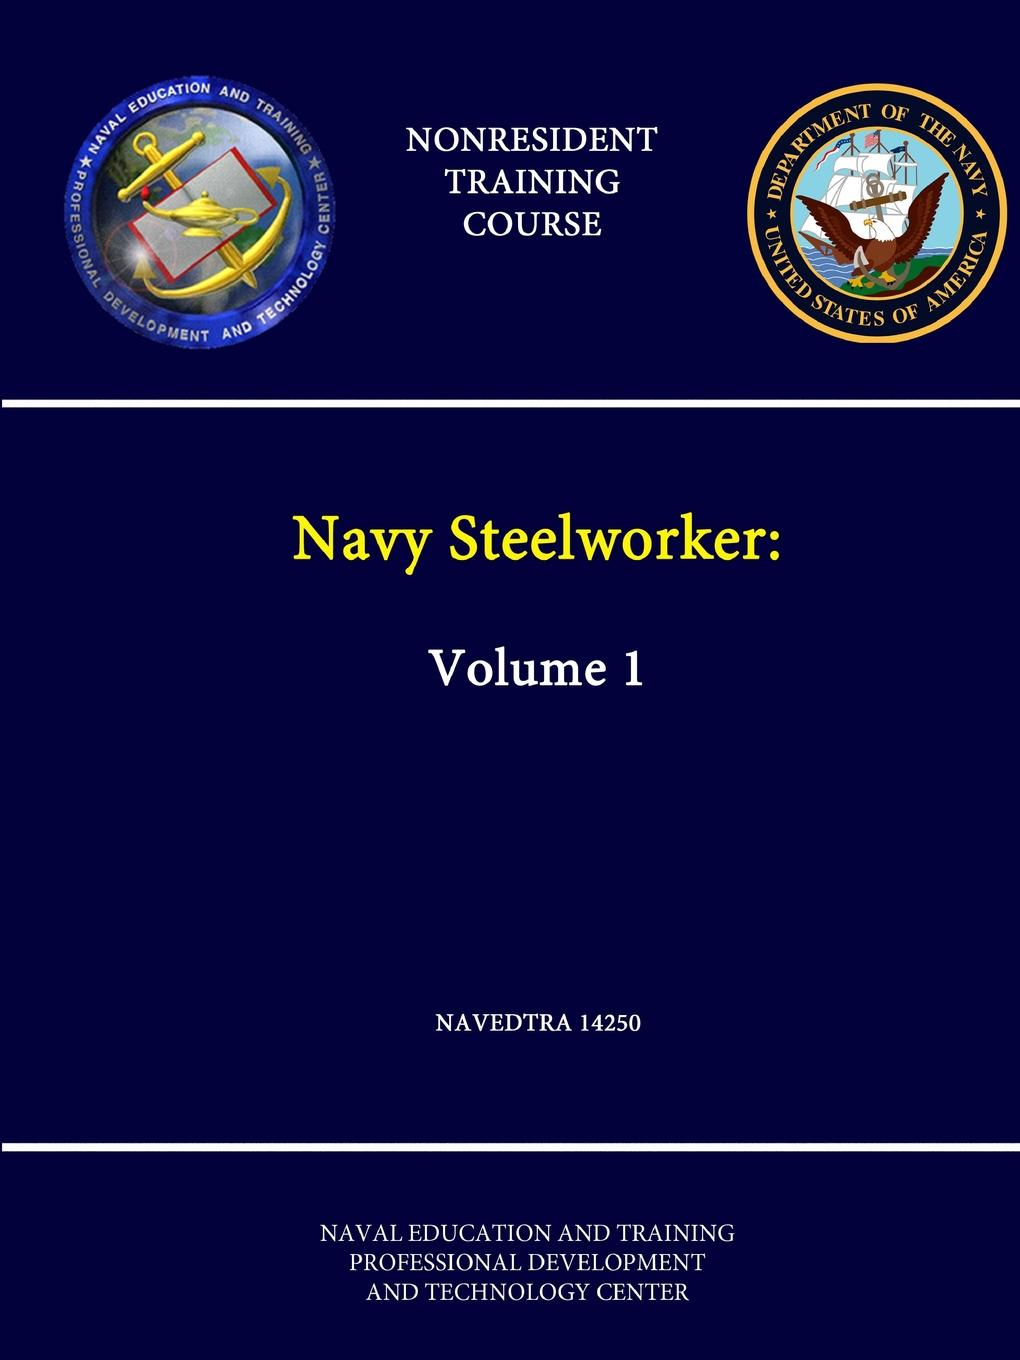 Naval Education & Training Center Navy Steelworker. Volume 1 - NAVEDTRA 14250 - (Nonresident Training Course) free shipping temperature controled ppr welding machine plastic pipe welding machine ac 220v 110v 800w 20 32mm to use